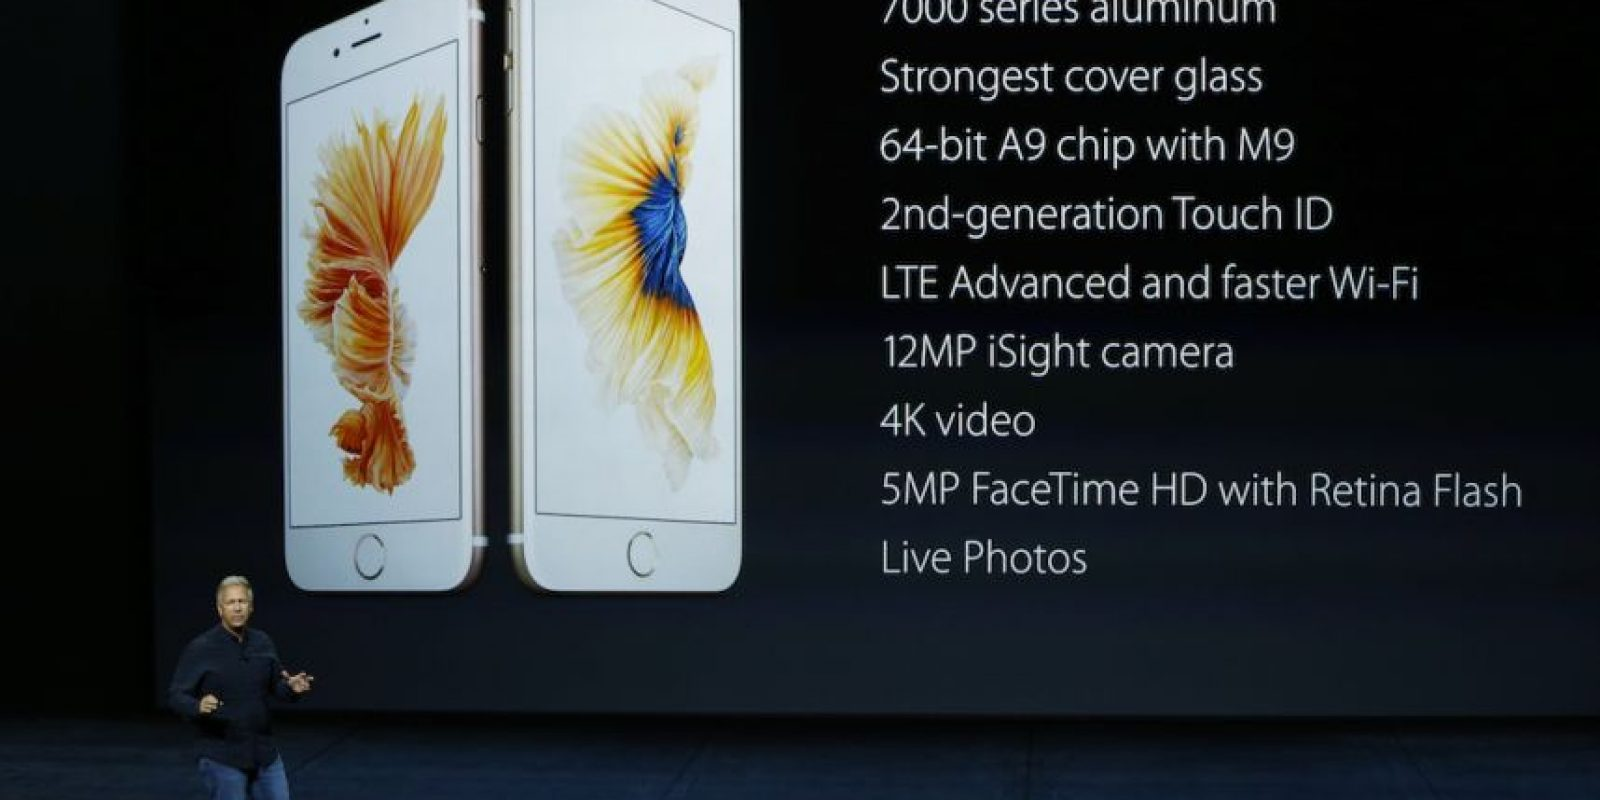 Dimensiones: 138.3 * 67.1 * 7.1 mm. Foto: Apple